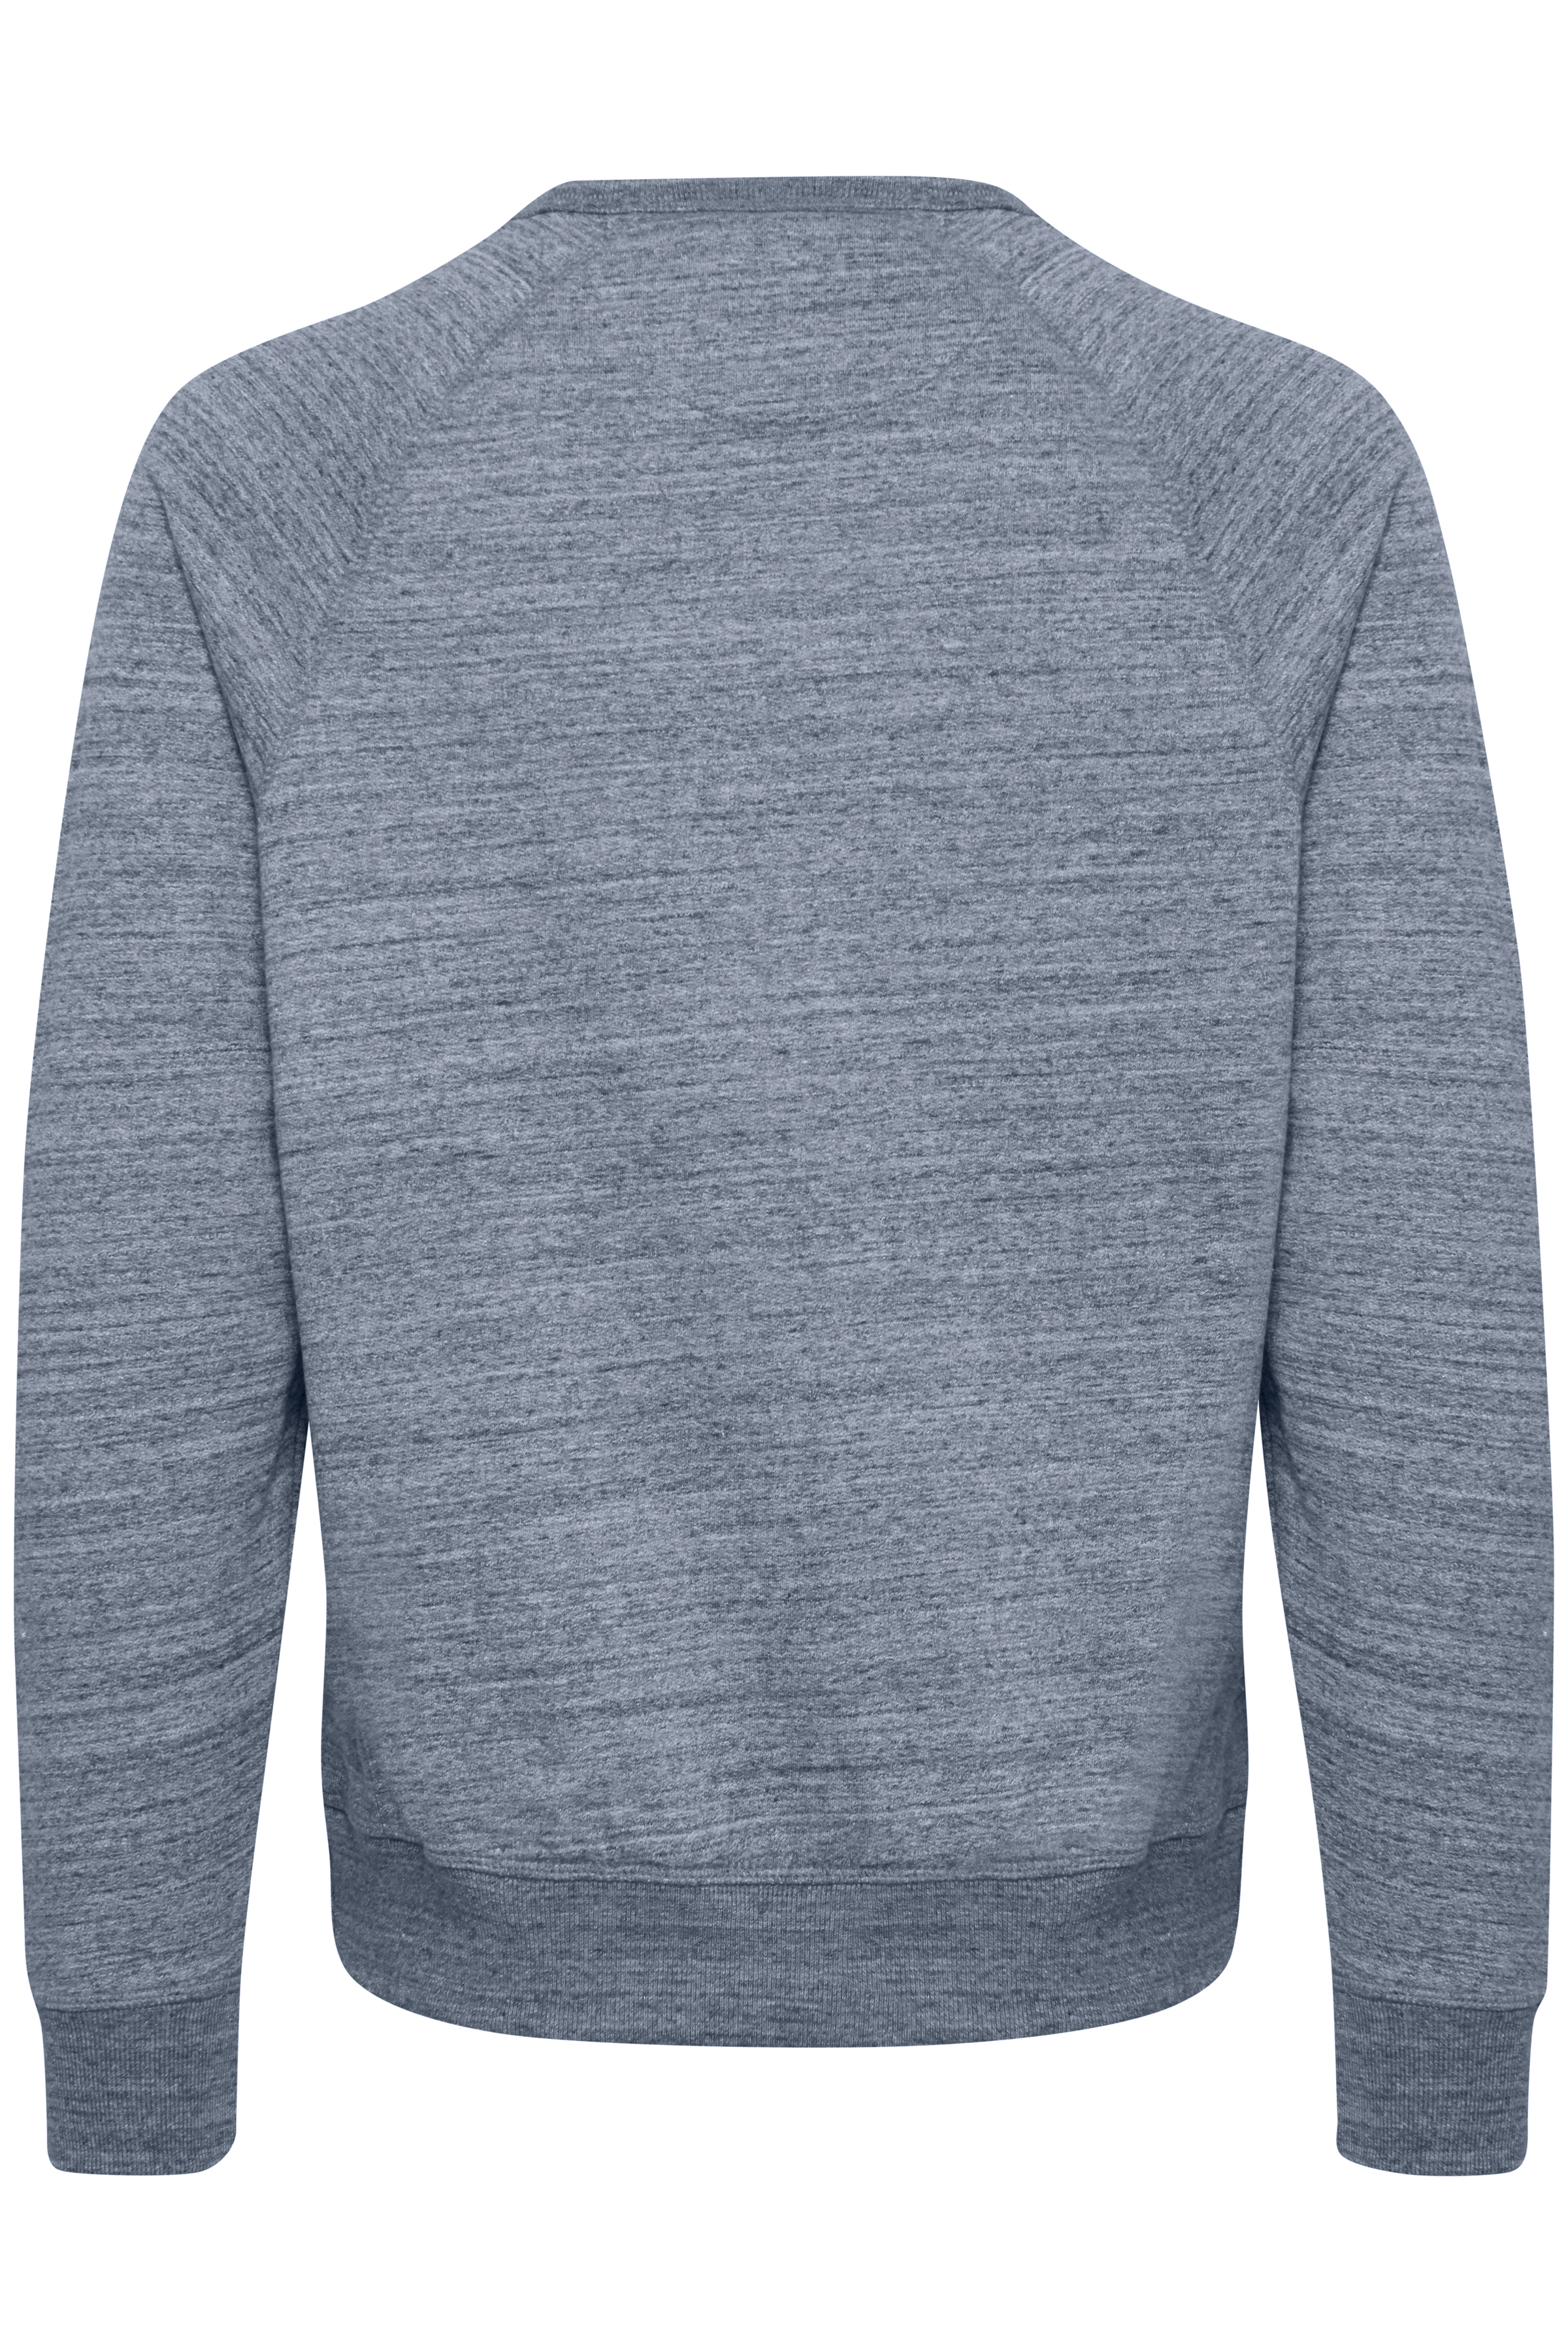 Dark Navy Blue Sweatshirt fra Blend He – Køb Dark Navy Blue Sweatshirt fra str. S-3XL her